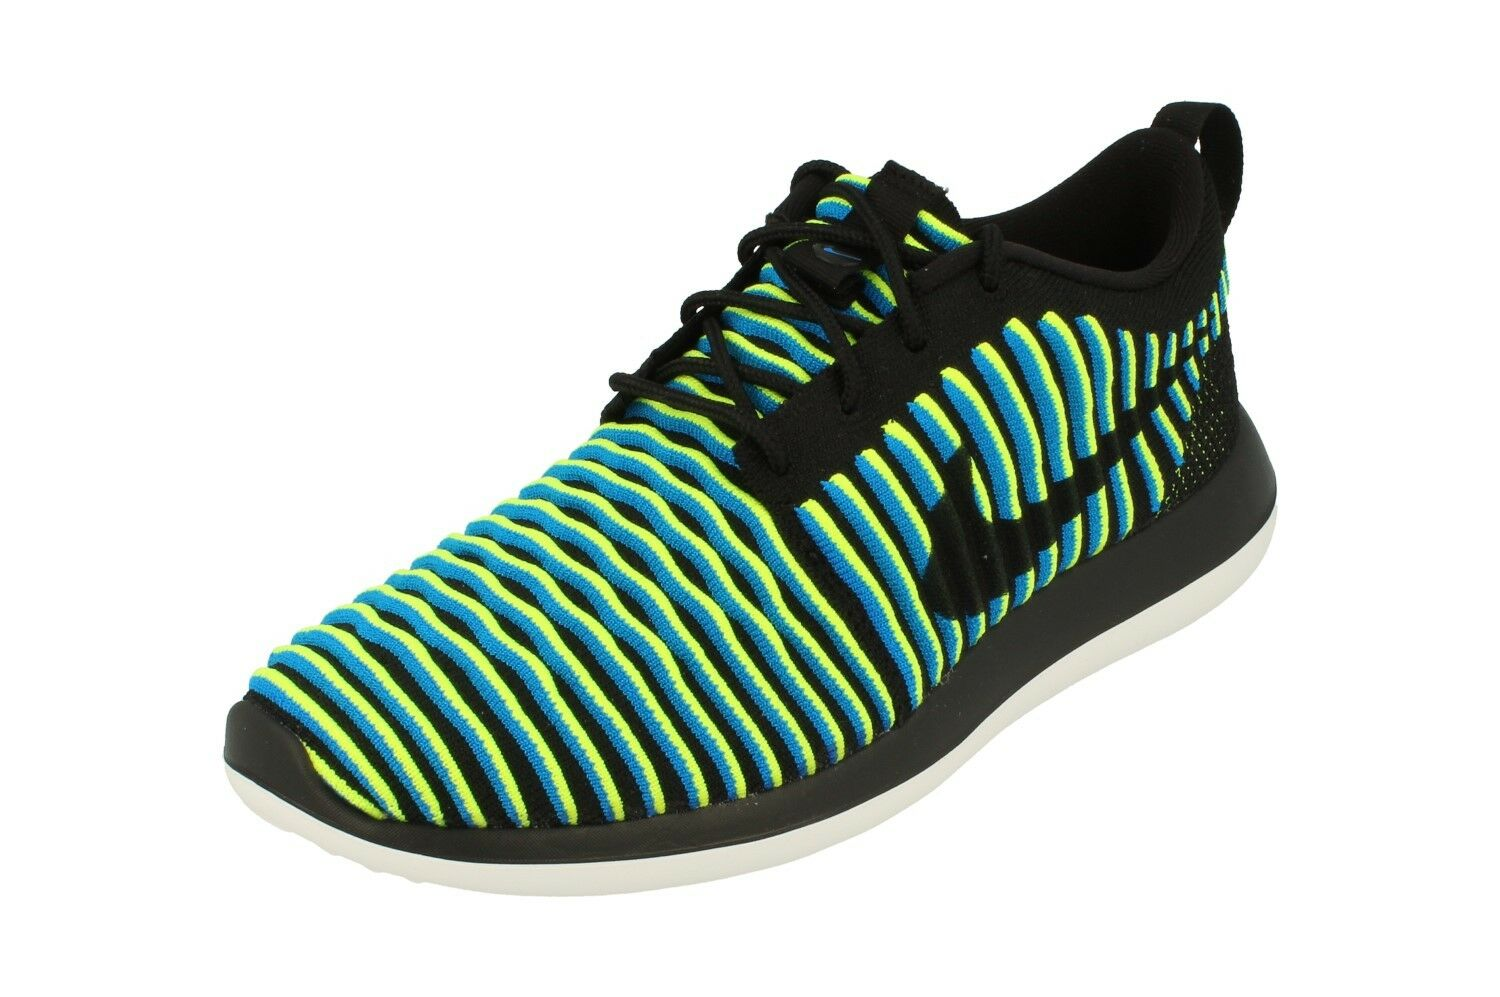 Nike Womens Roshe Two Flyknit Running Trainers 844929 Sneakers Shoes 003 Casual wild